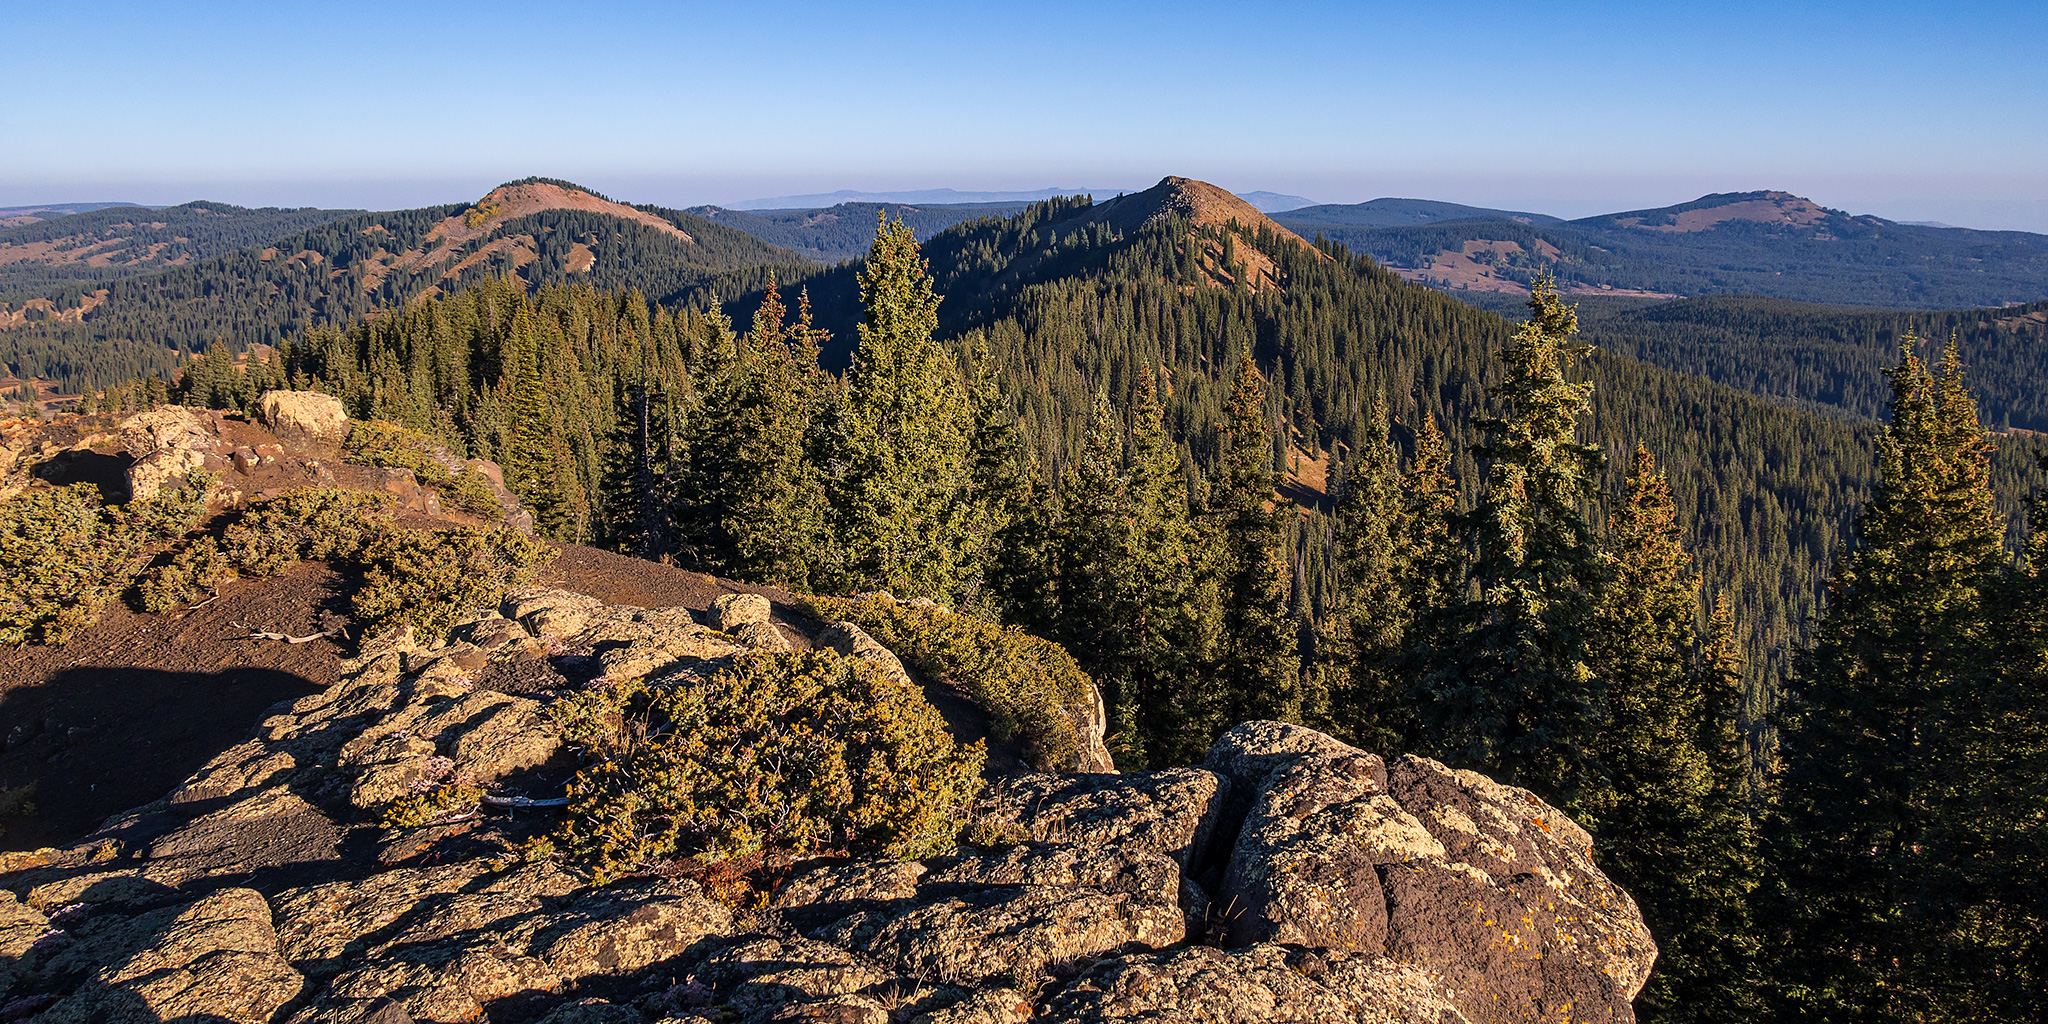 Highpoint of the Grand Mesa: Crater Peak